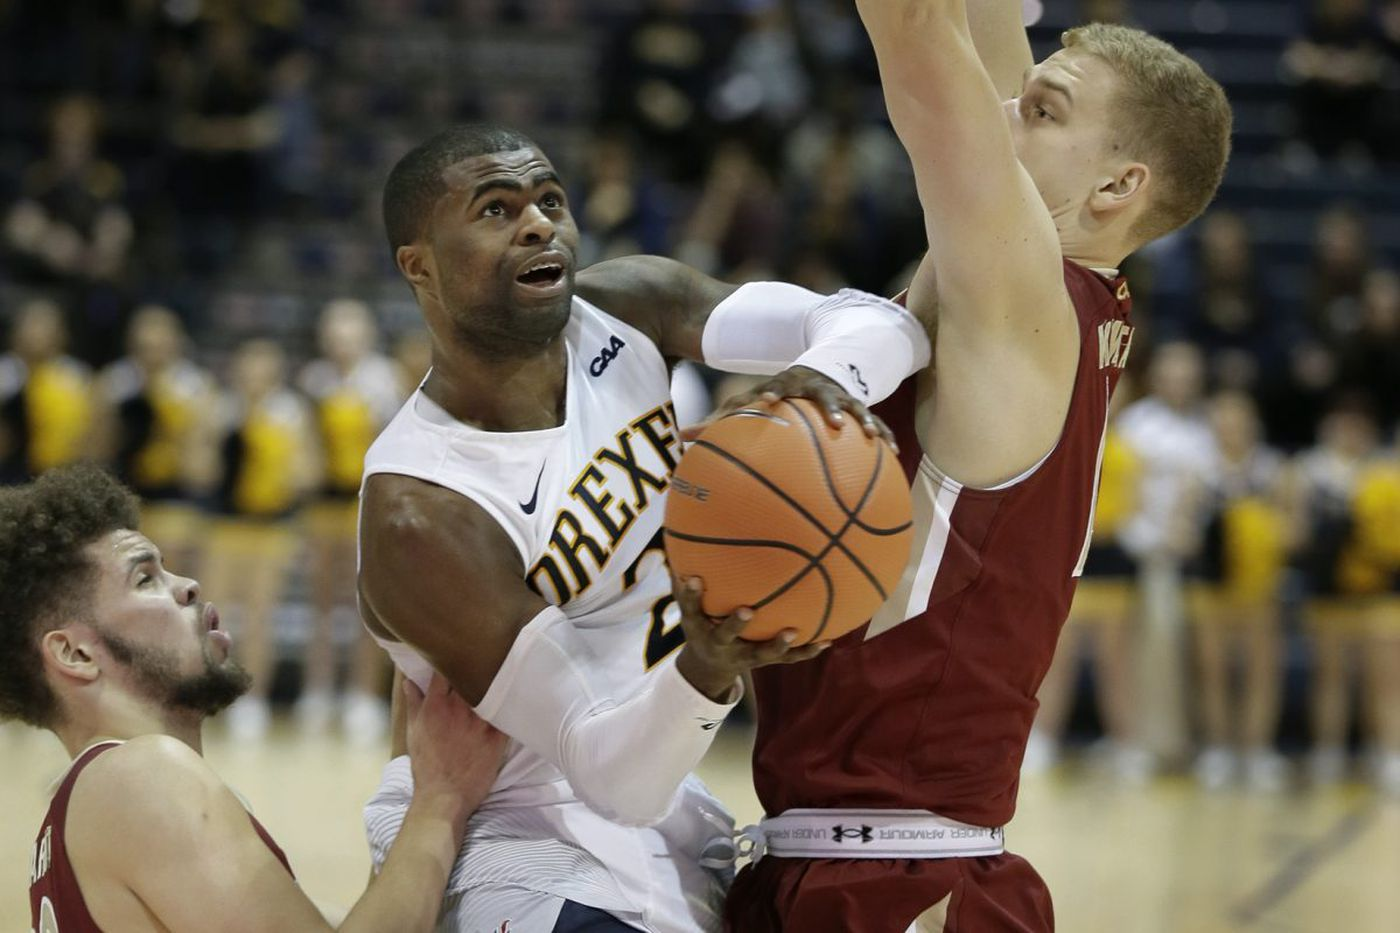 Tramaine Isabell's clutch free throw lifts Drexel over Northeastern